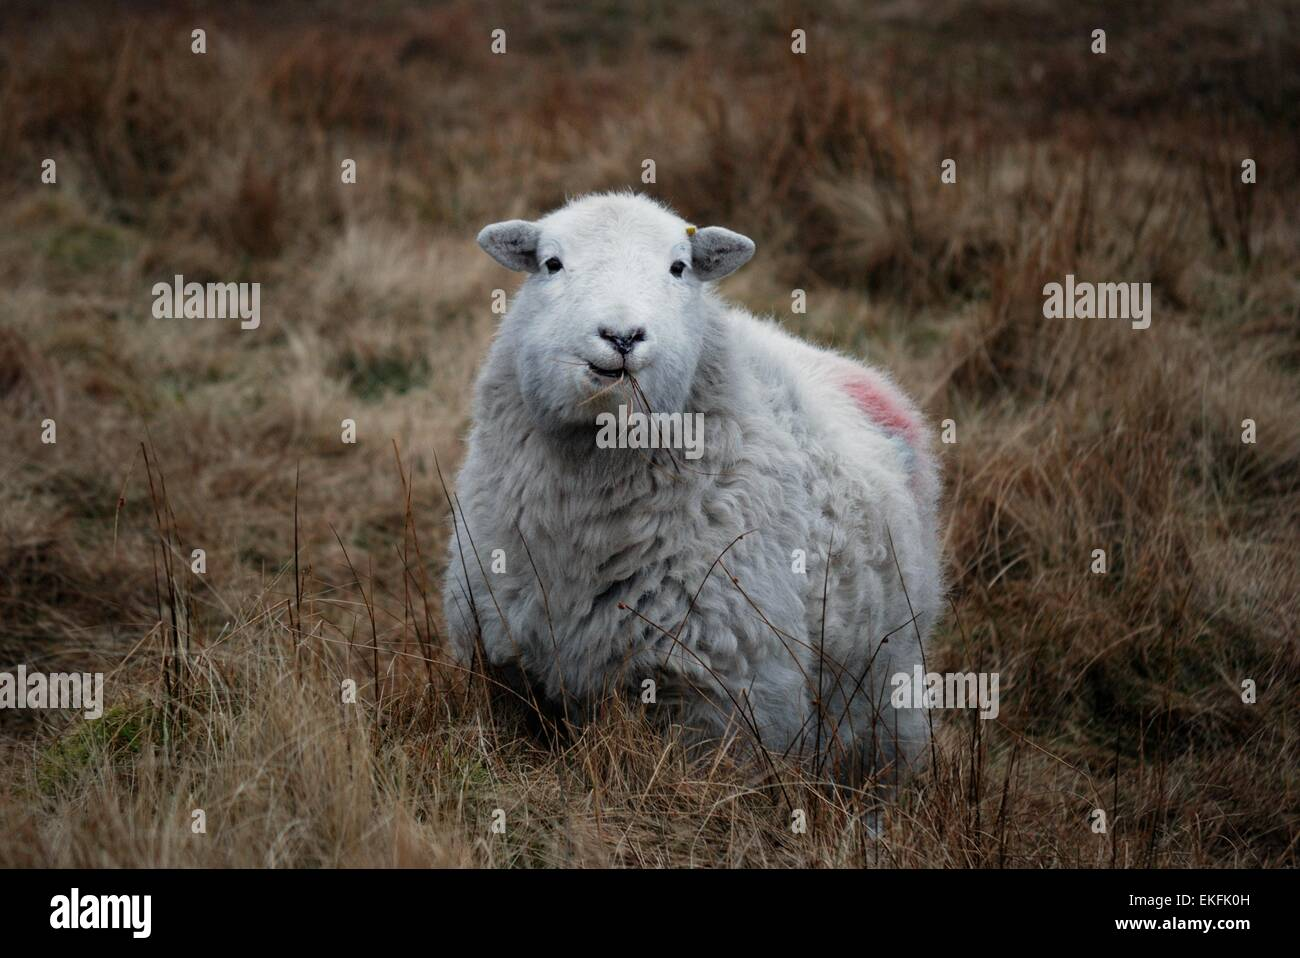 A Sheep Chewing Stock Photos & A Sheep Chewing Stock Images - Alamy